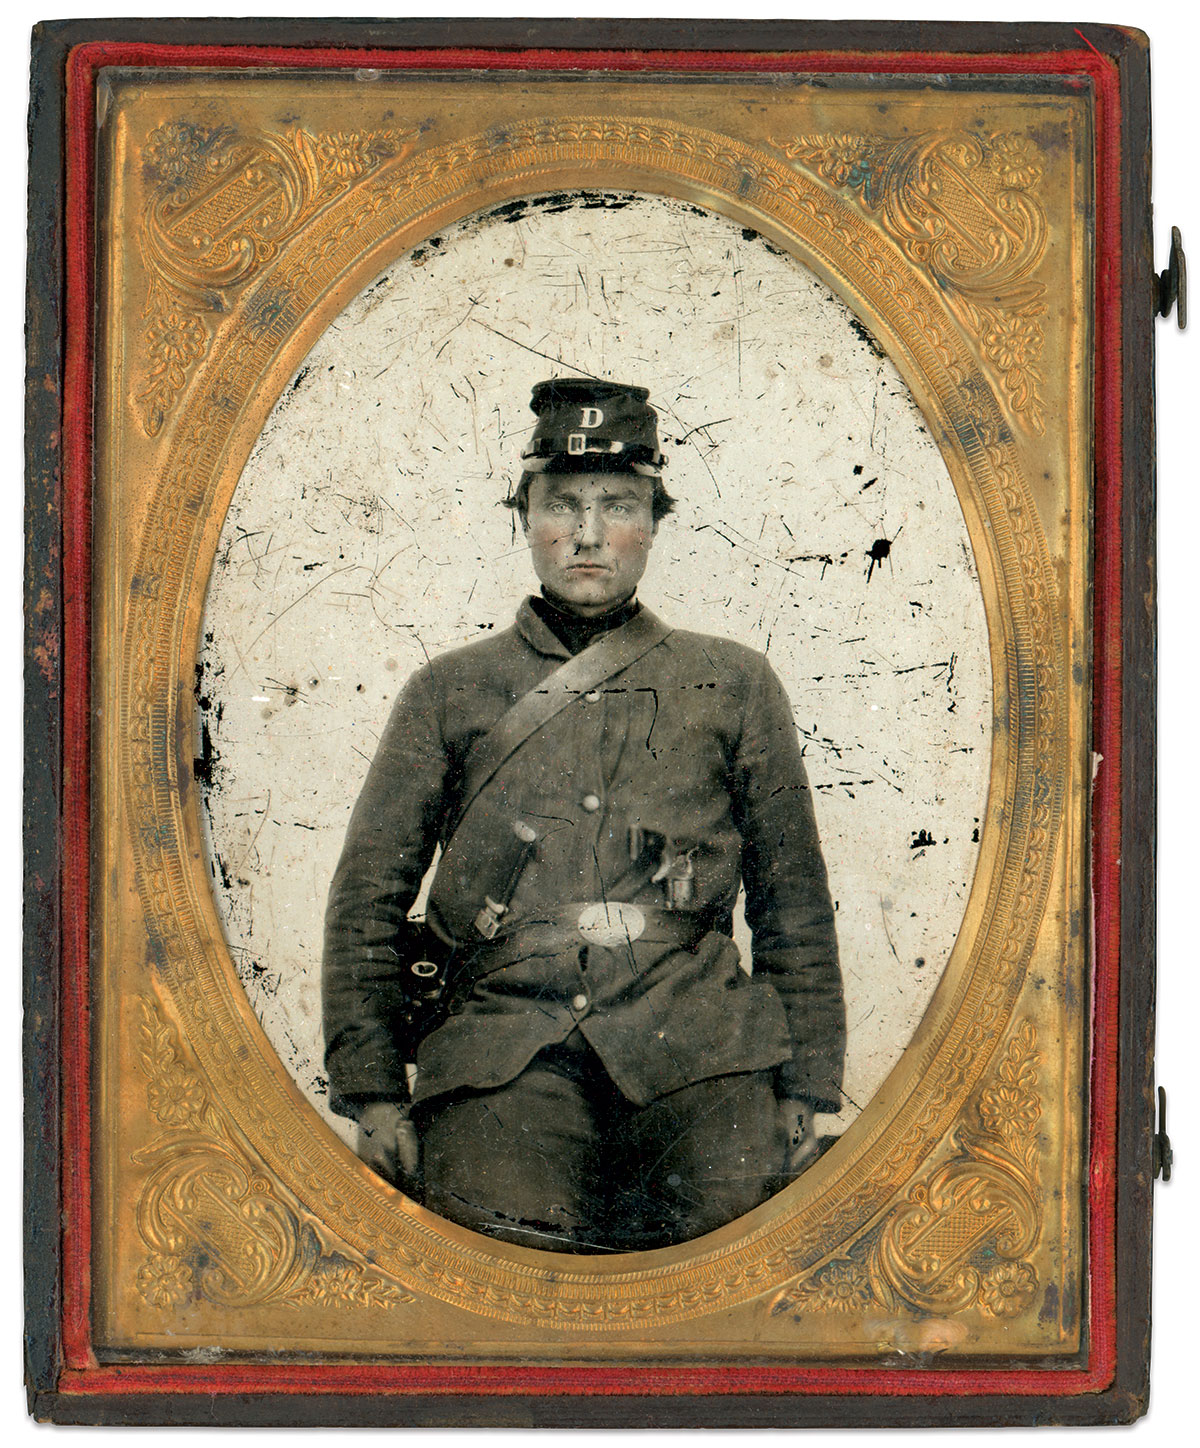 An unidentified infantryman of Company D wears his stock with a standard issue fatigue uniform and cap. Quarter-plate tintype by an anonymous photographer. Rich Jahn Collection.